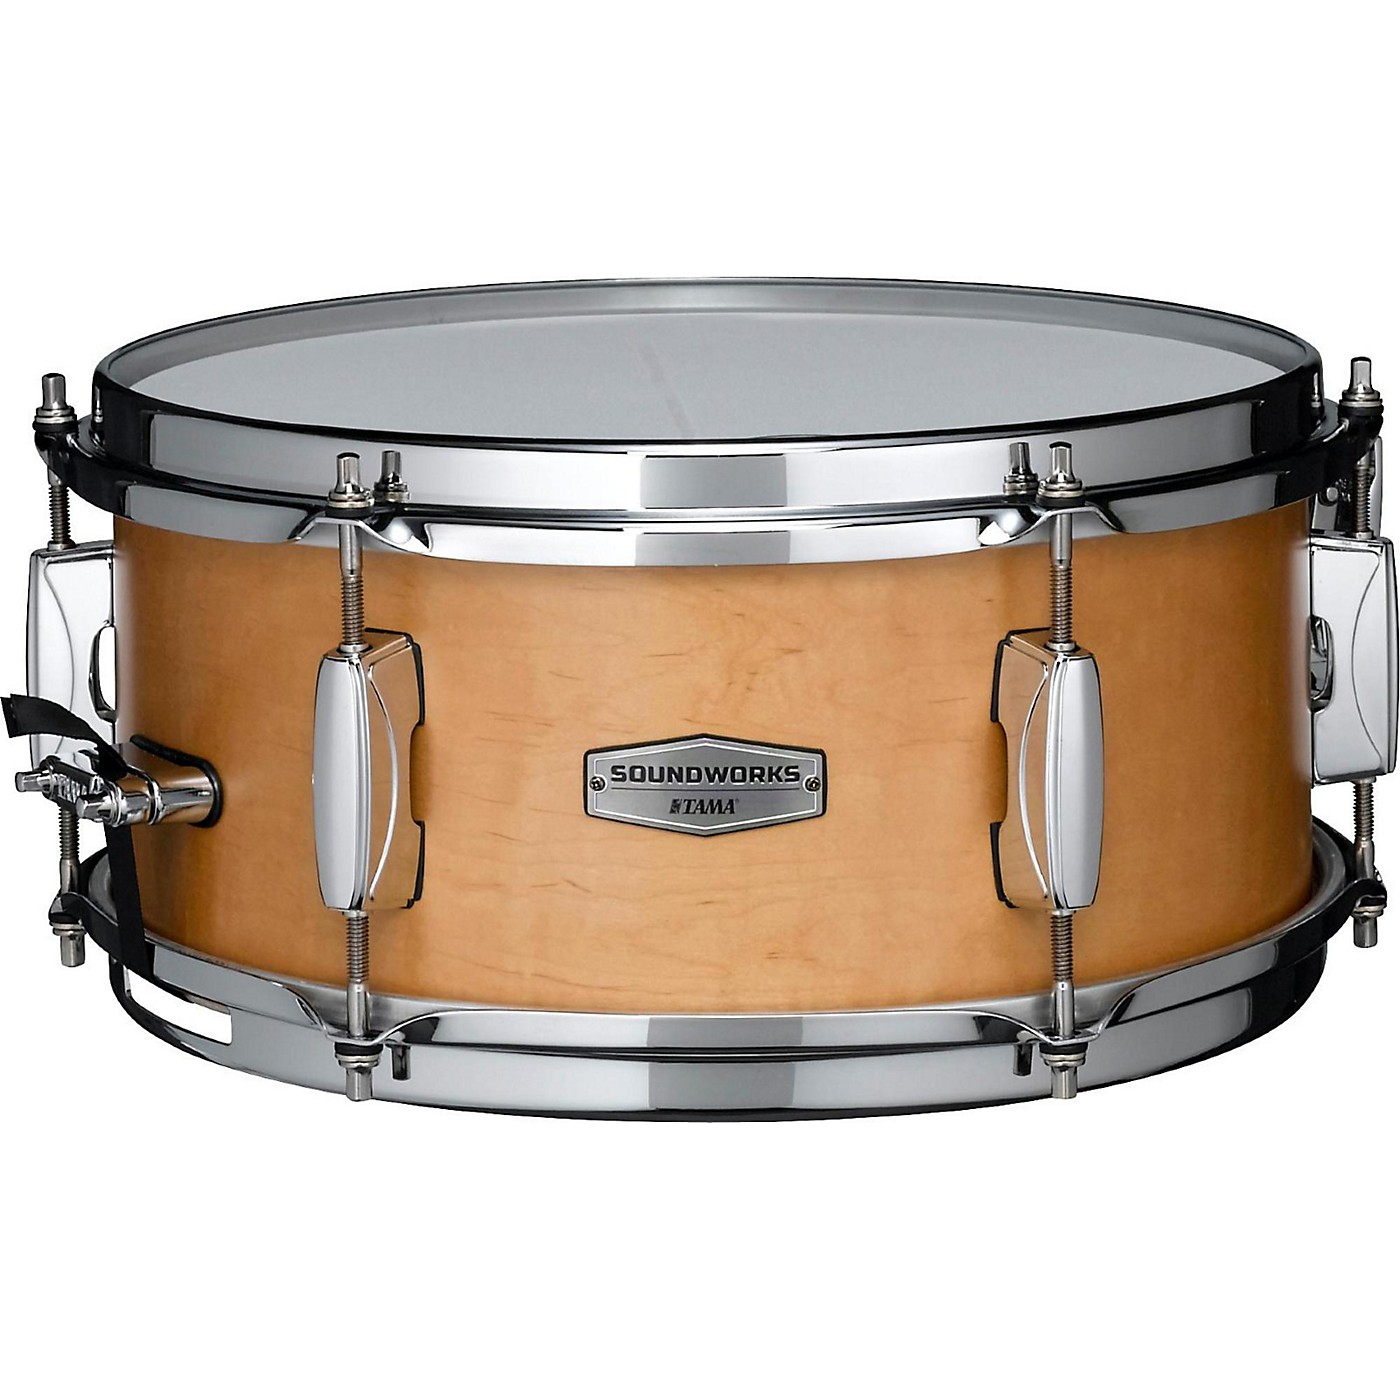 TAMA Soundworks Maple Snare Drum thumbnail